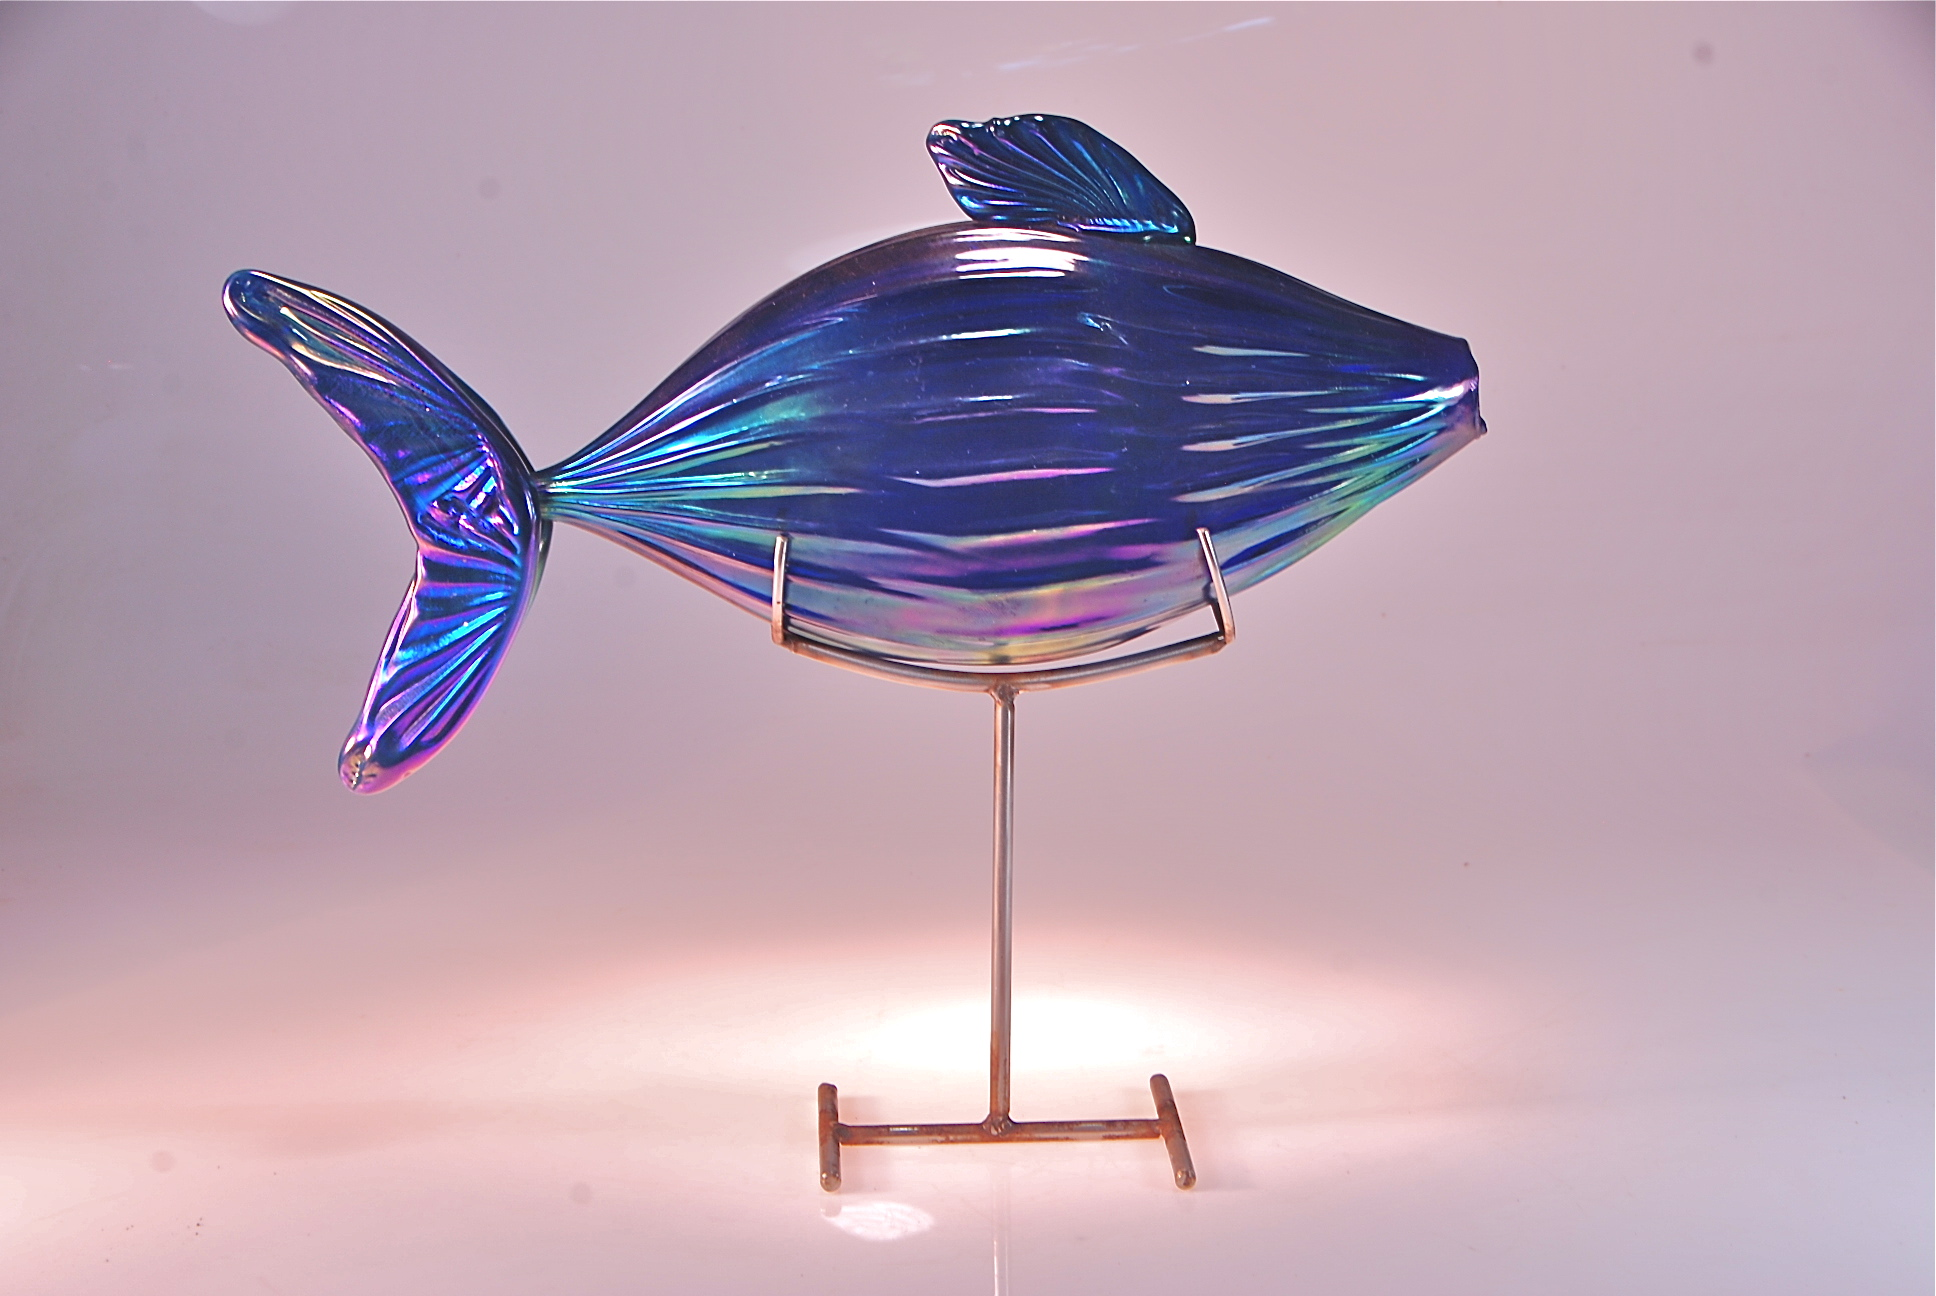 Fish on a stand,  stainless steel and glass 2014 Cobalt , irridized glass, artist rick strini